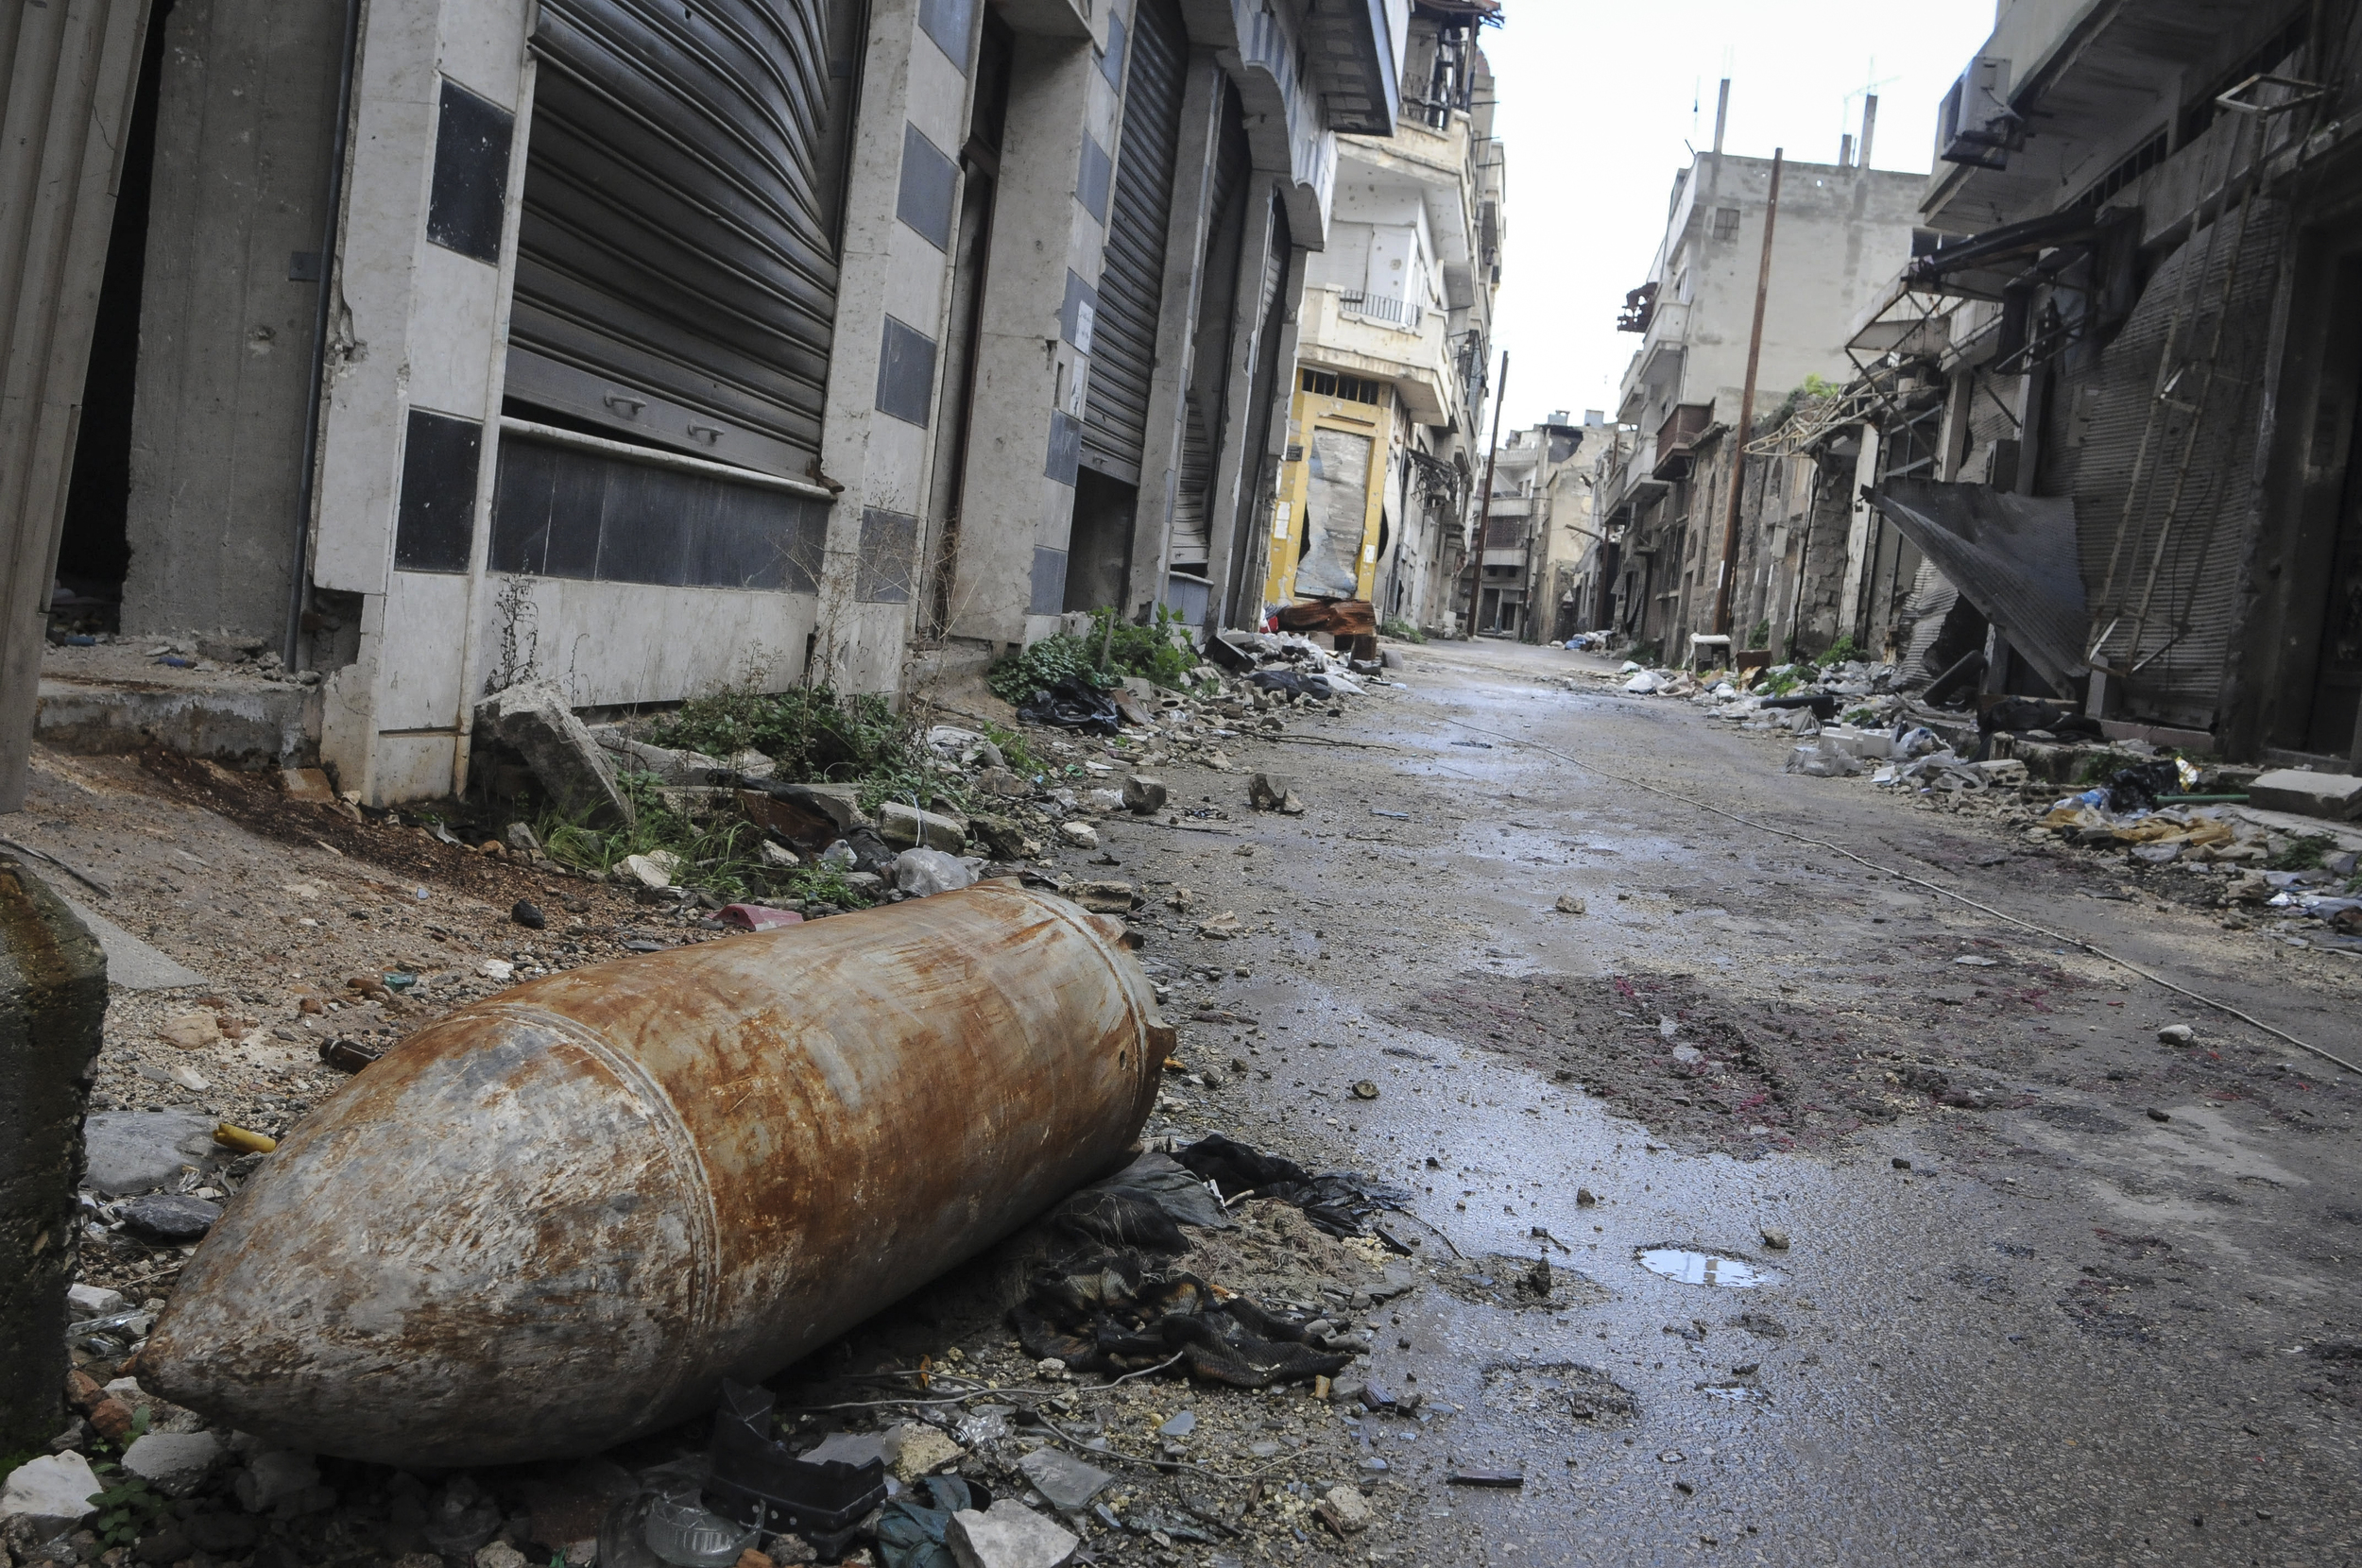 An Unexploded ordnance lays in the street in downtown homs. Teun Anthony Voeten. ©ICRC